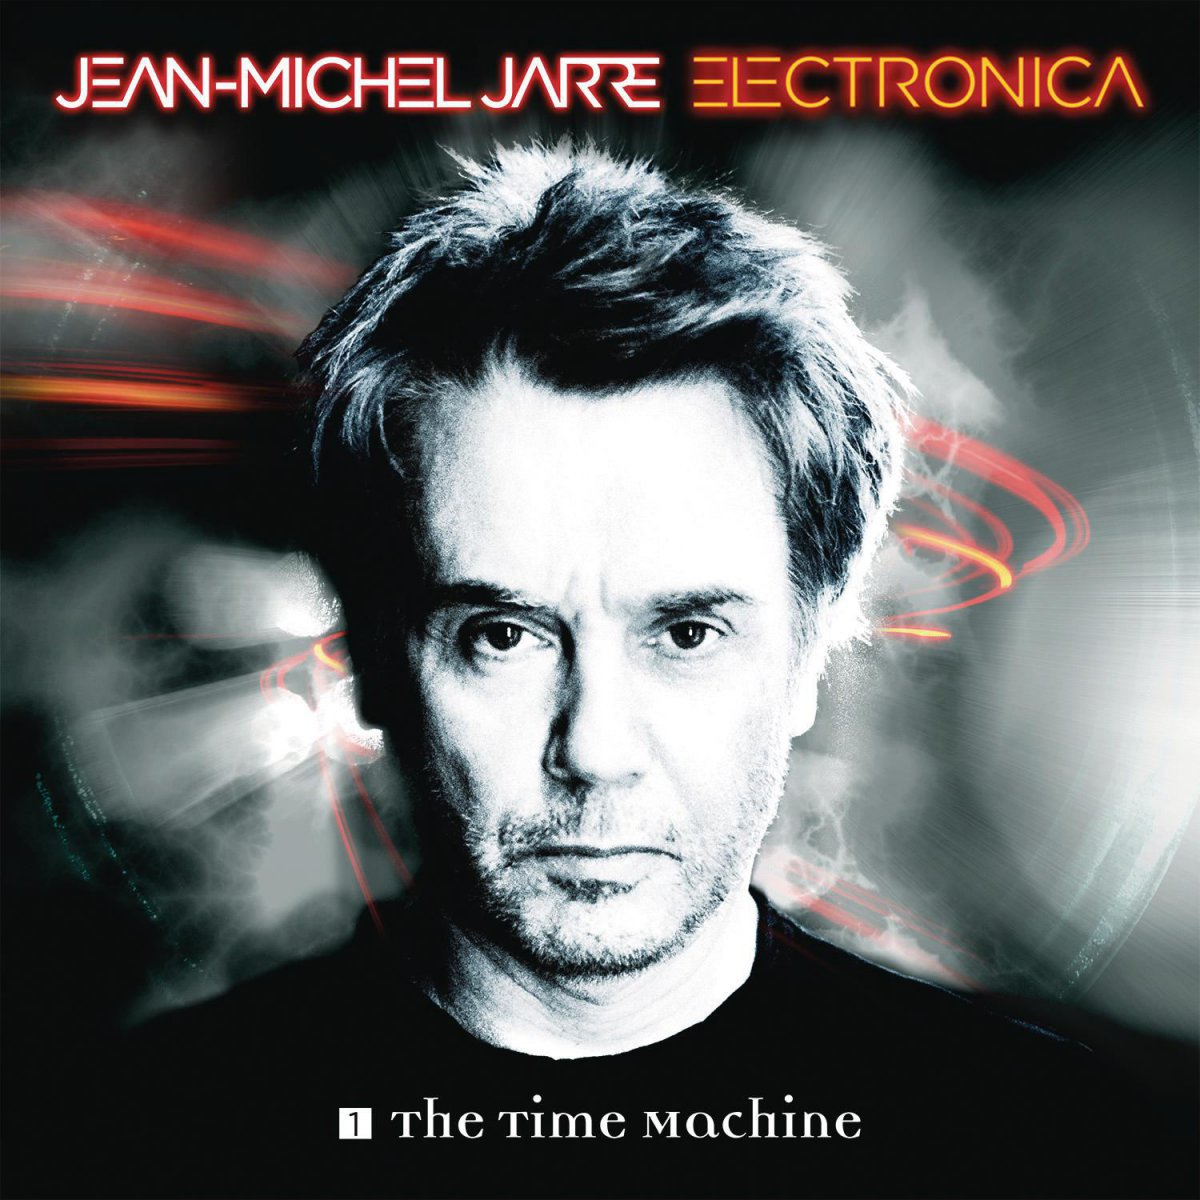 jean-michel jarre interview